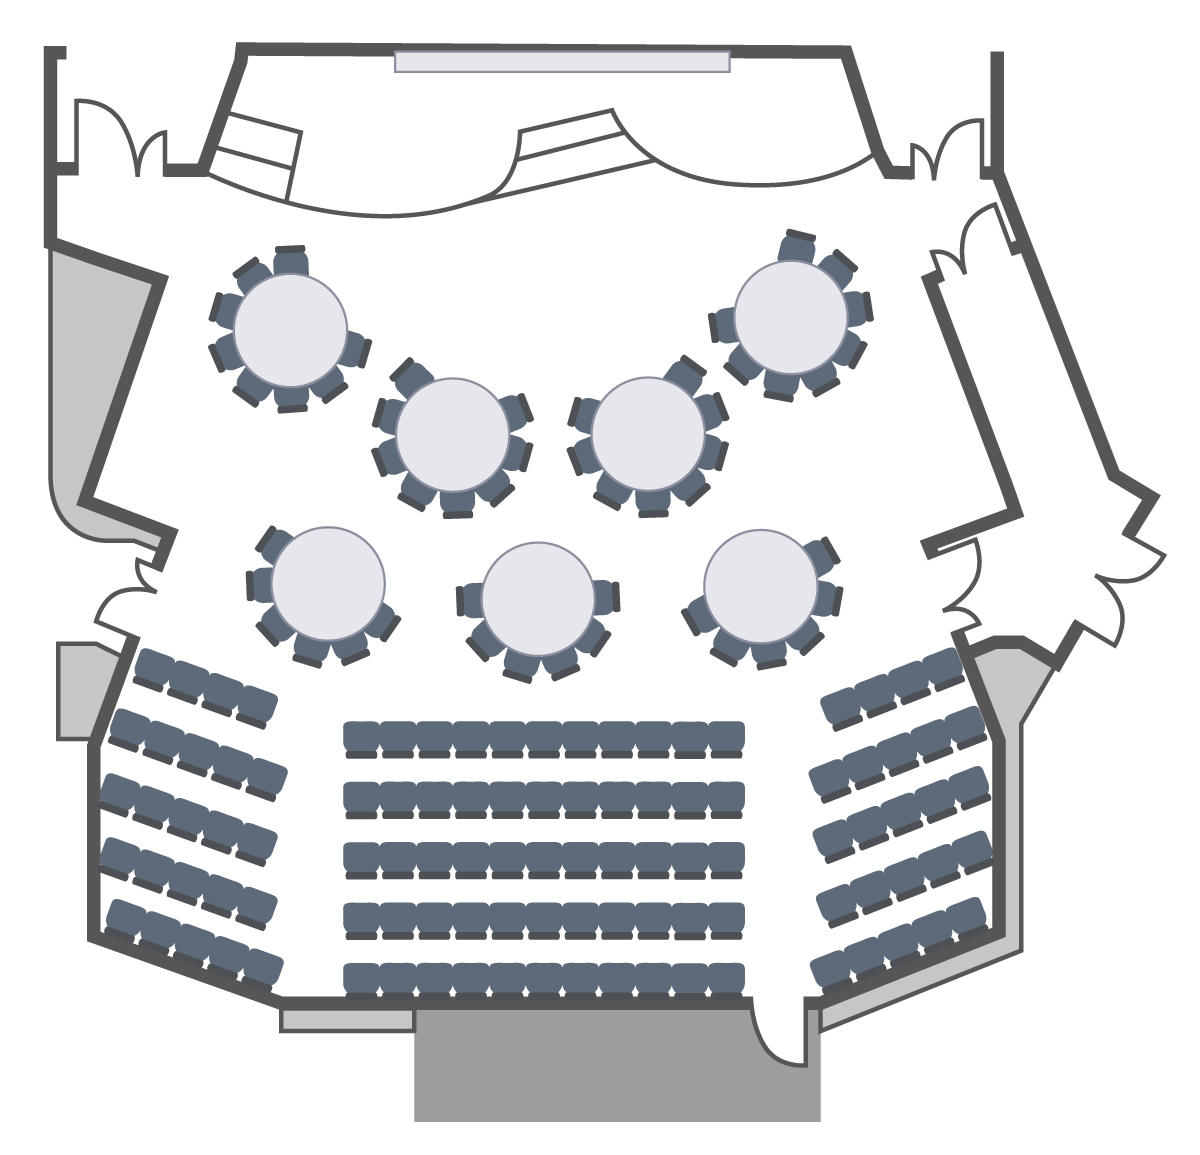 Squire theatre layout for event